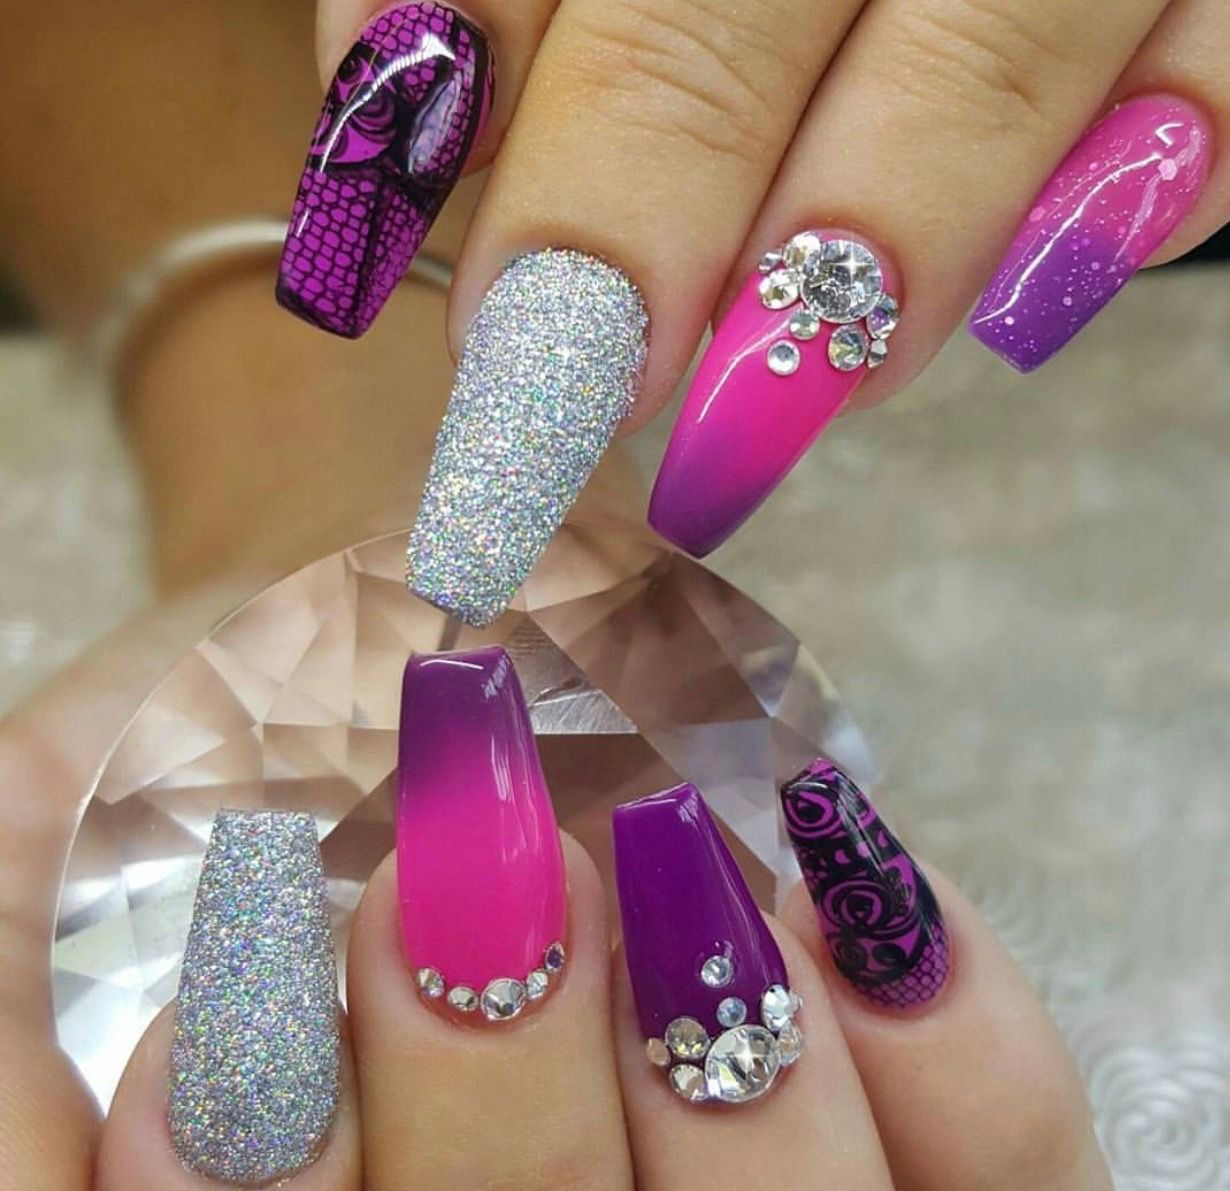 Pin by petra zippa on nails pinterest makeup bling nails and glam nails bling nails funky nails purple nails stiletto nails nice nails slay toe nail designs nails design prinsesfo Image collections